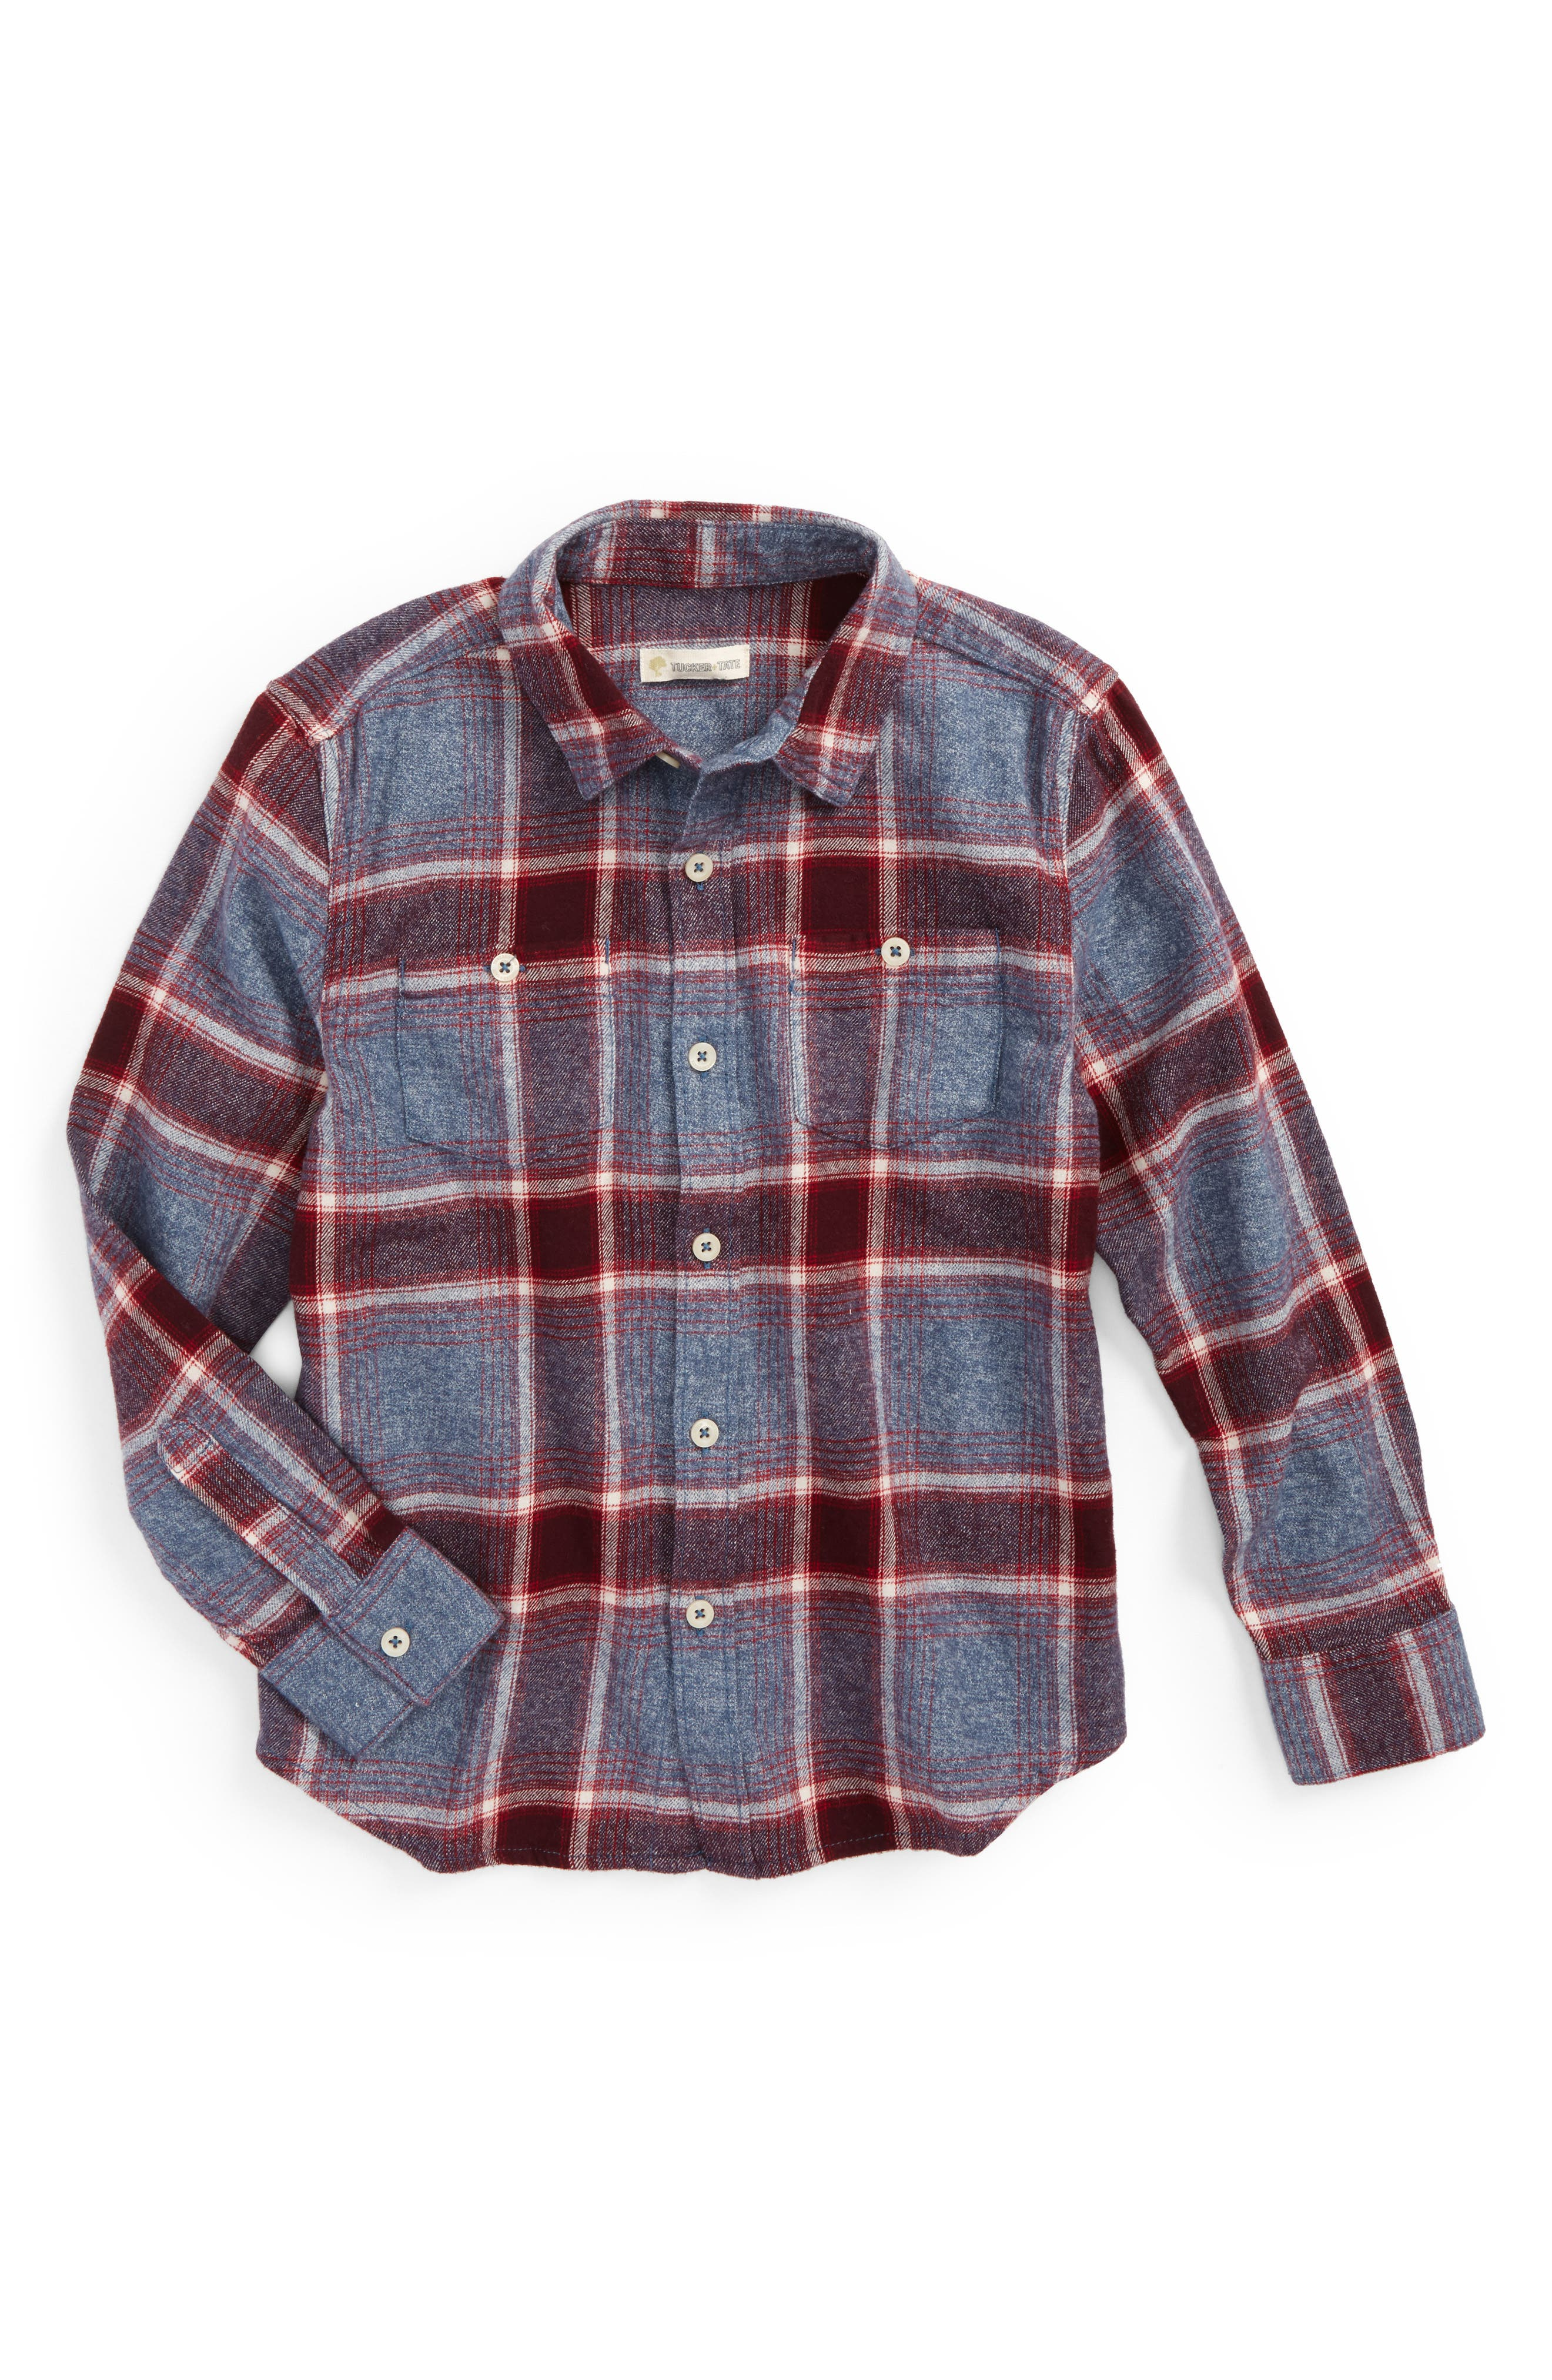 Main Image - Tucker + Tate Plaid Flannel Shirt (Toddler Boys & Little Boys)